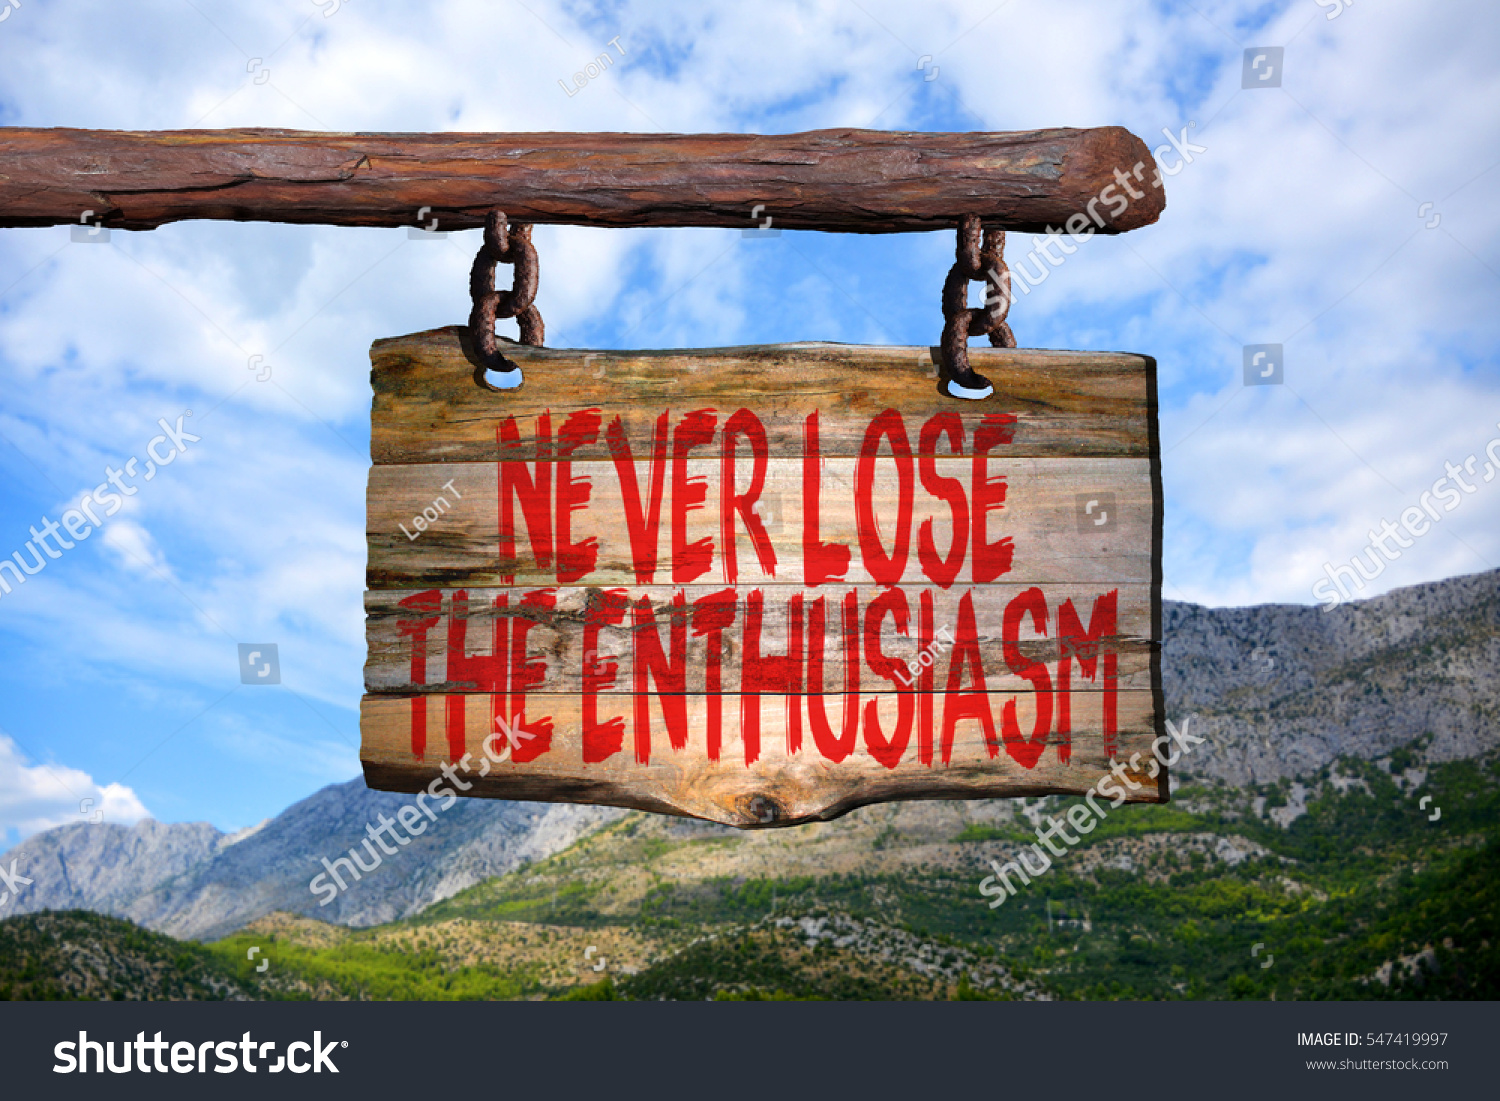 Never Lose Enthusiasm Motivational Phrase Sign Stock Photo. Snake Head Logo. Pre K Graduation Banners. Custom Car Logo. Label Prints Stickers. Workshop Signs Of Stroke. July 27 Signs Of Stroke. Custom Vinyl Lettering. Uplifting Lettering